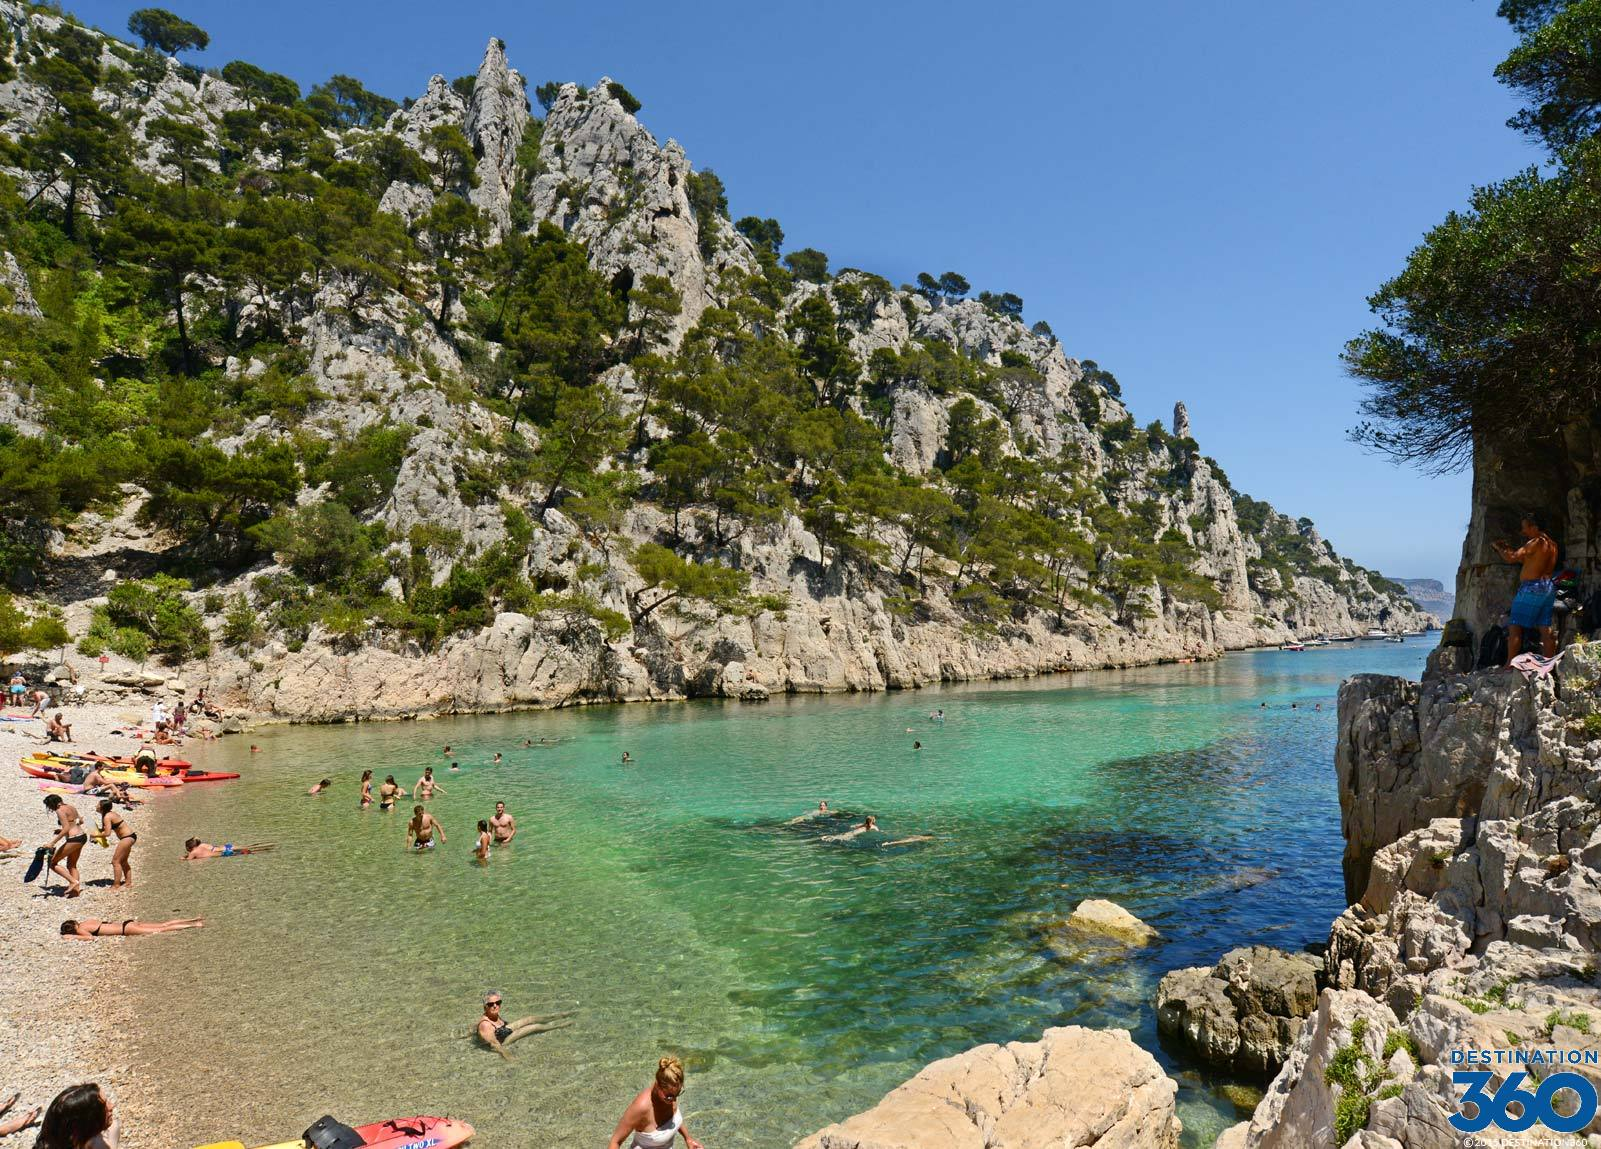 Calanques calanques in marseille and cassis for Cassis france hotels